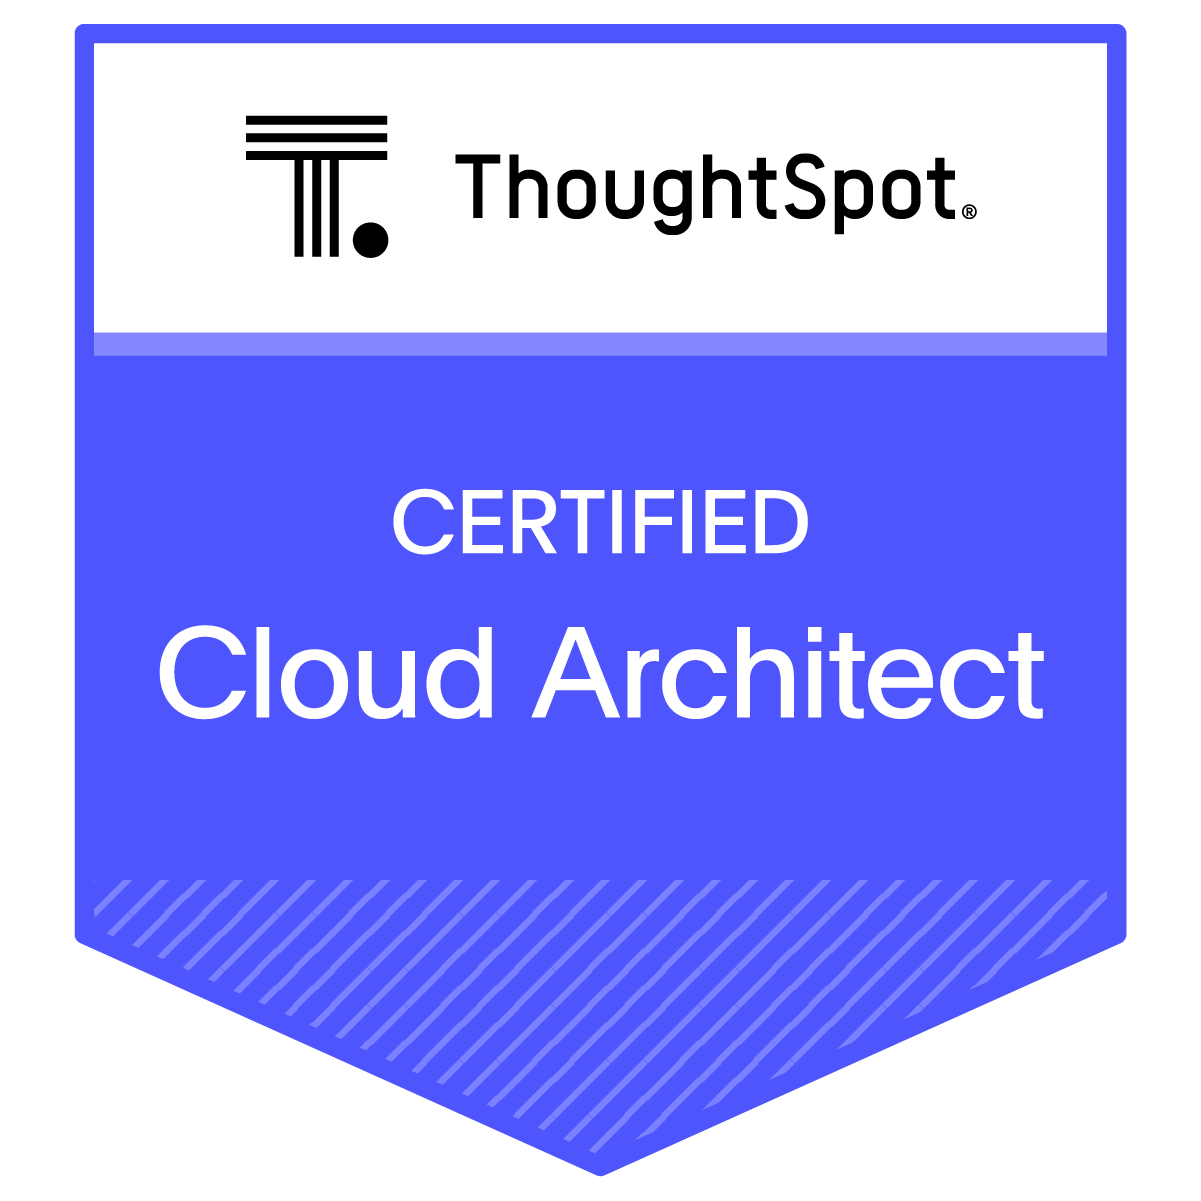 Certified ThoughtSpot Cloud Architect